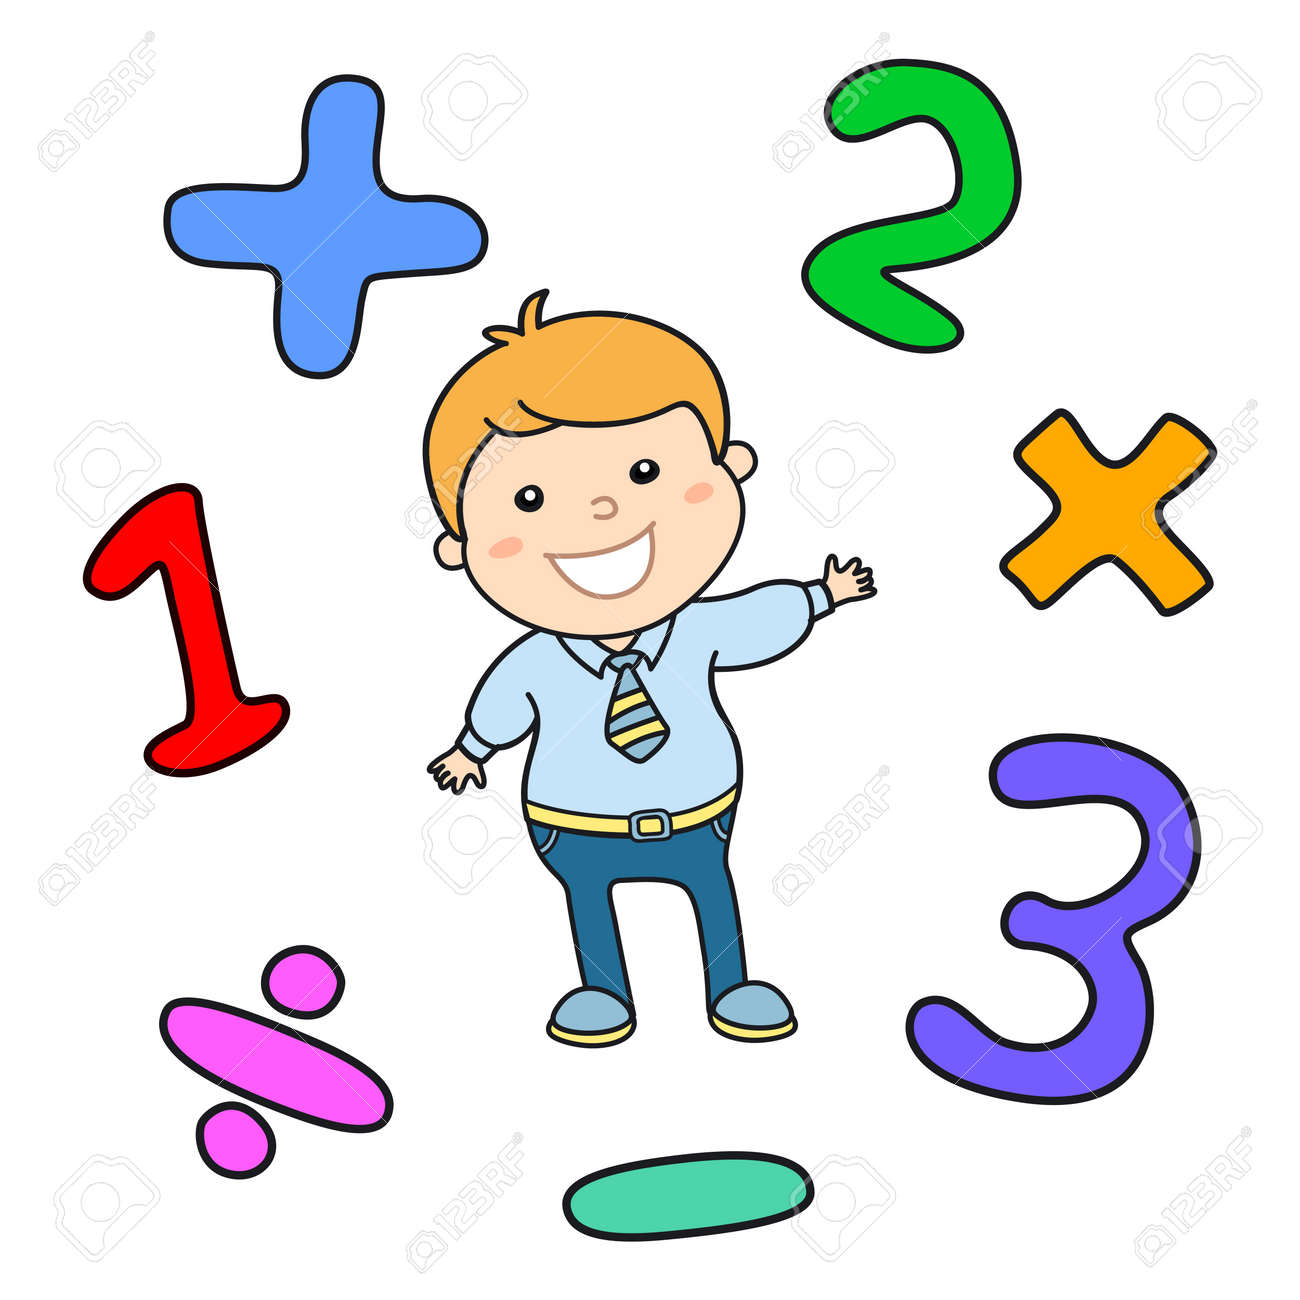 cartoon style math learning game illustration. mathematical